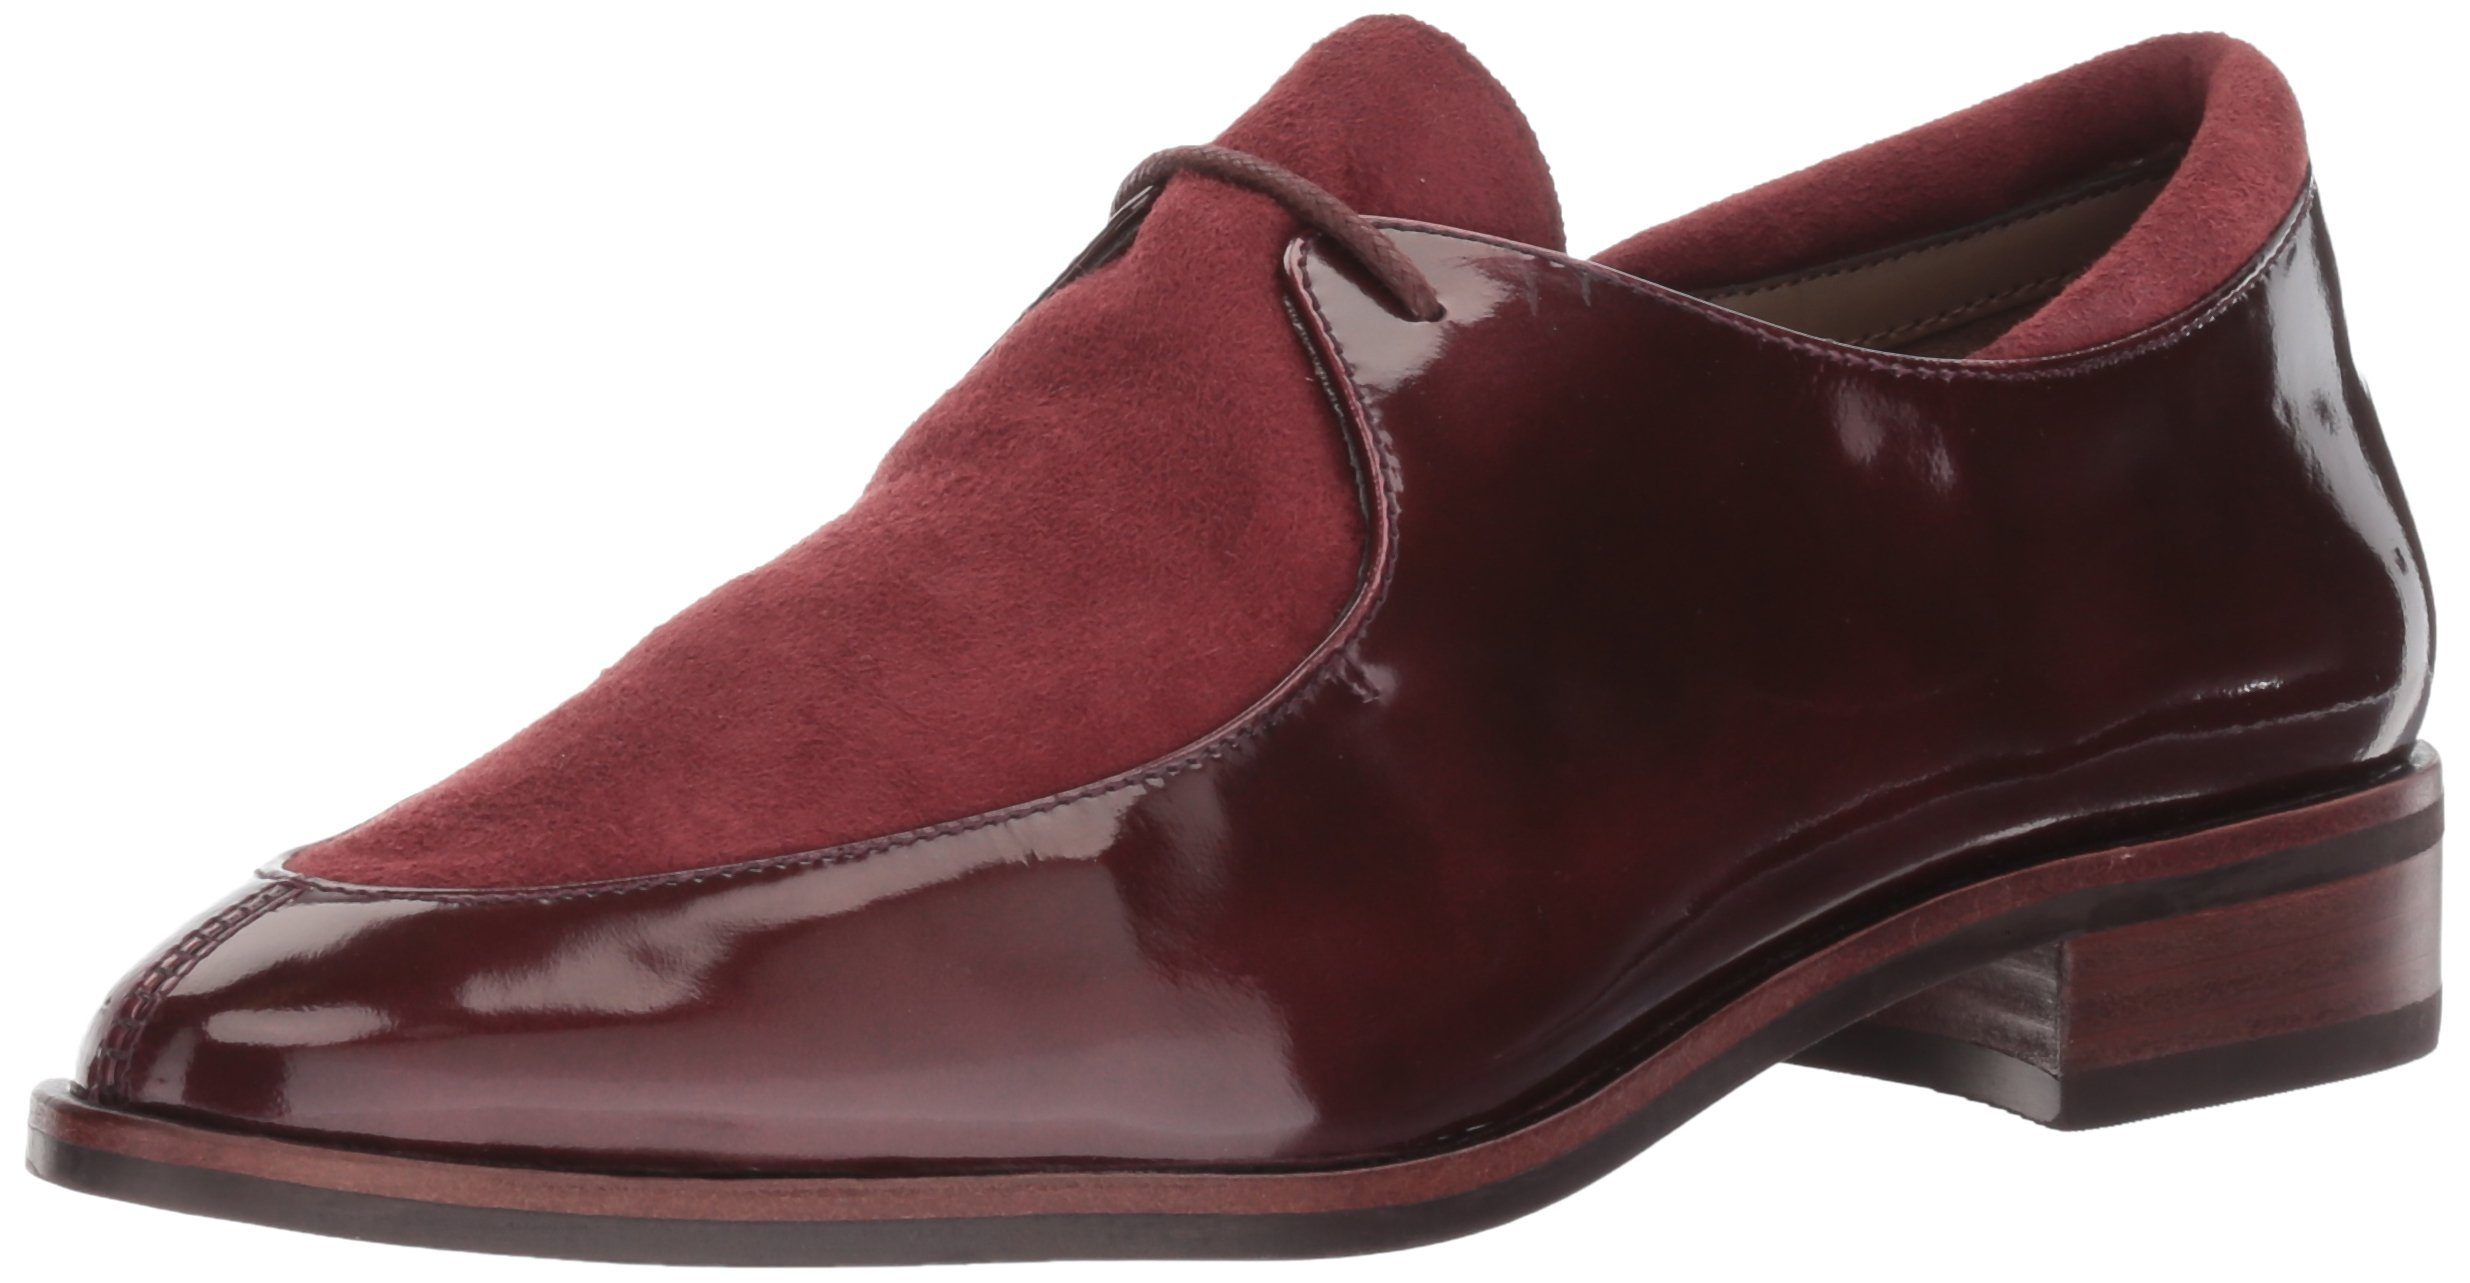 Aerosoles Women's East Village Oxford, Wine Leather, 9 M US